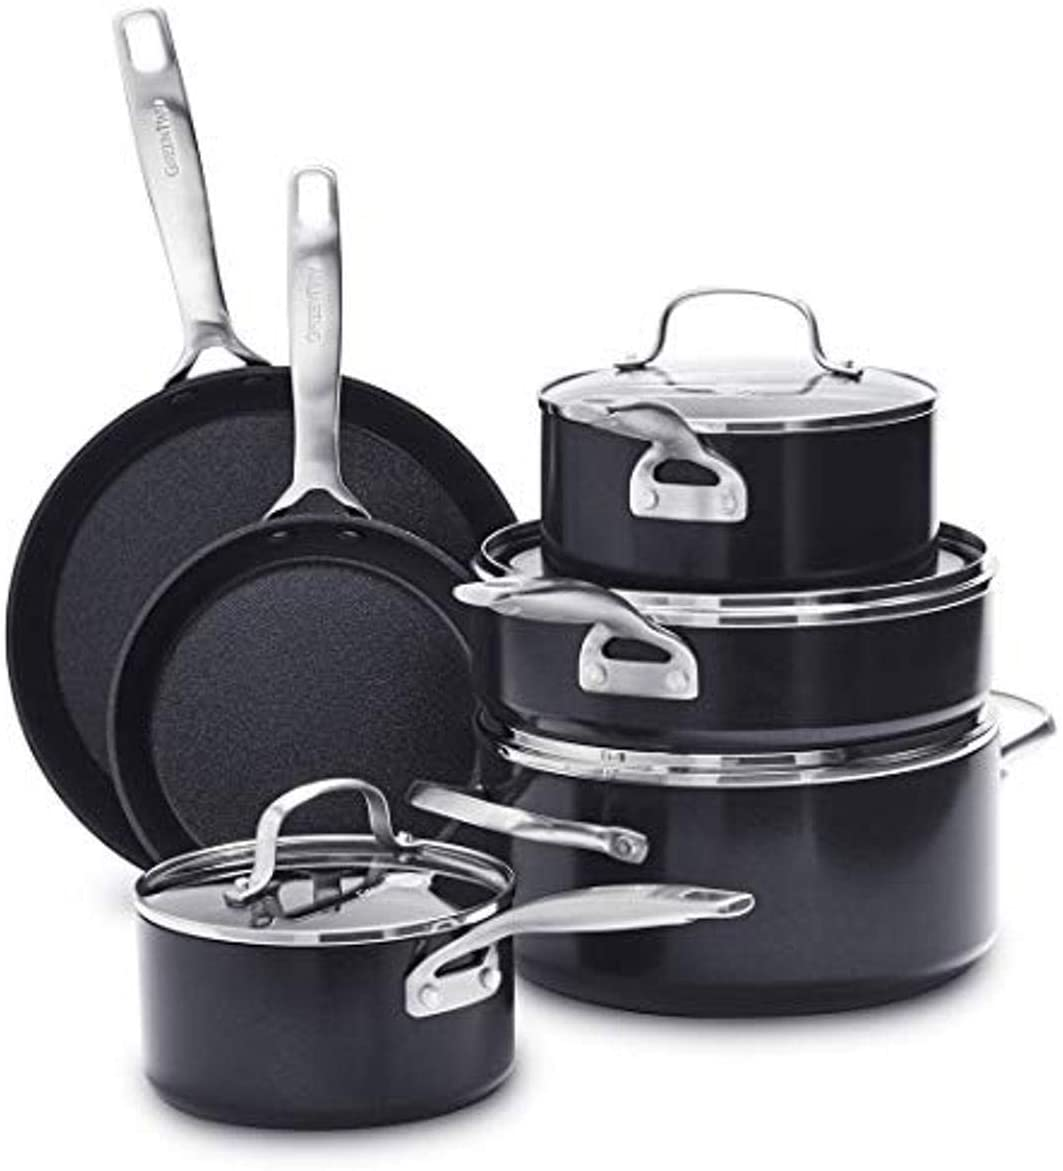 The best Ceramic Nonstick Cookware Reviews